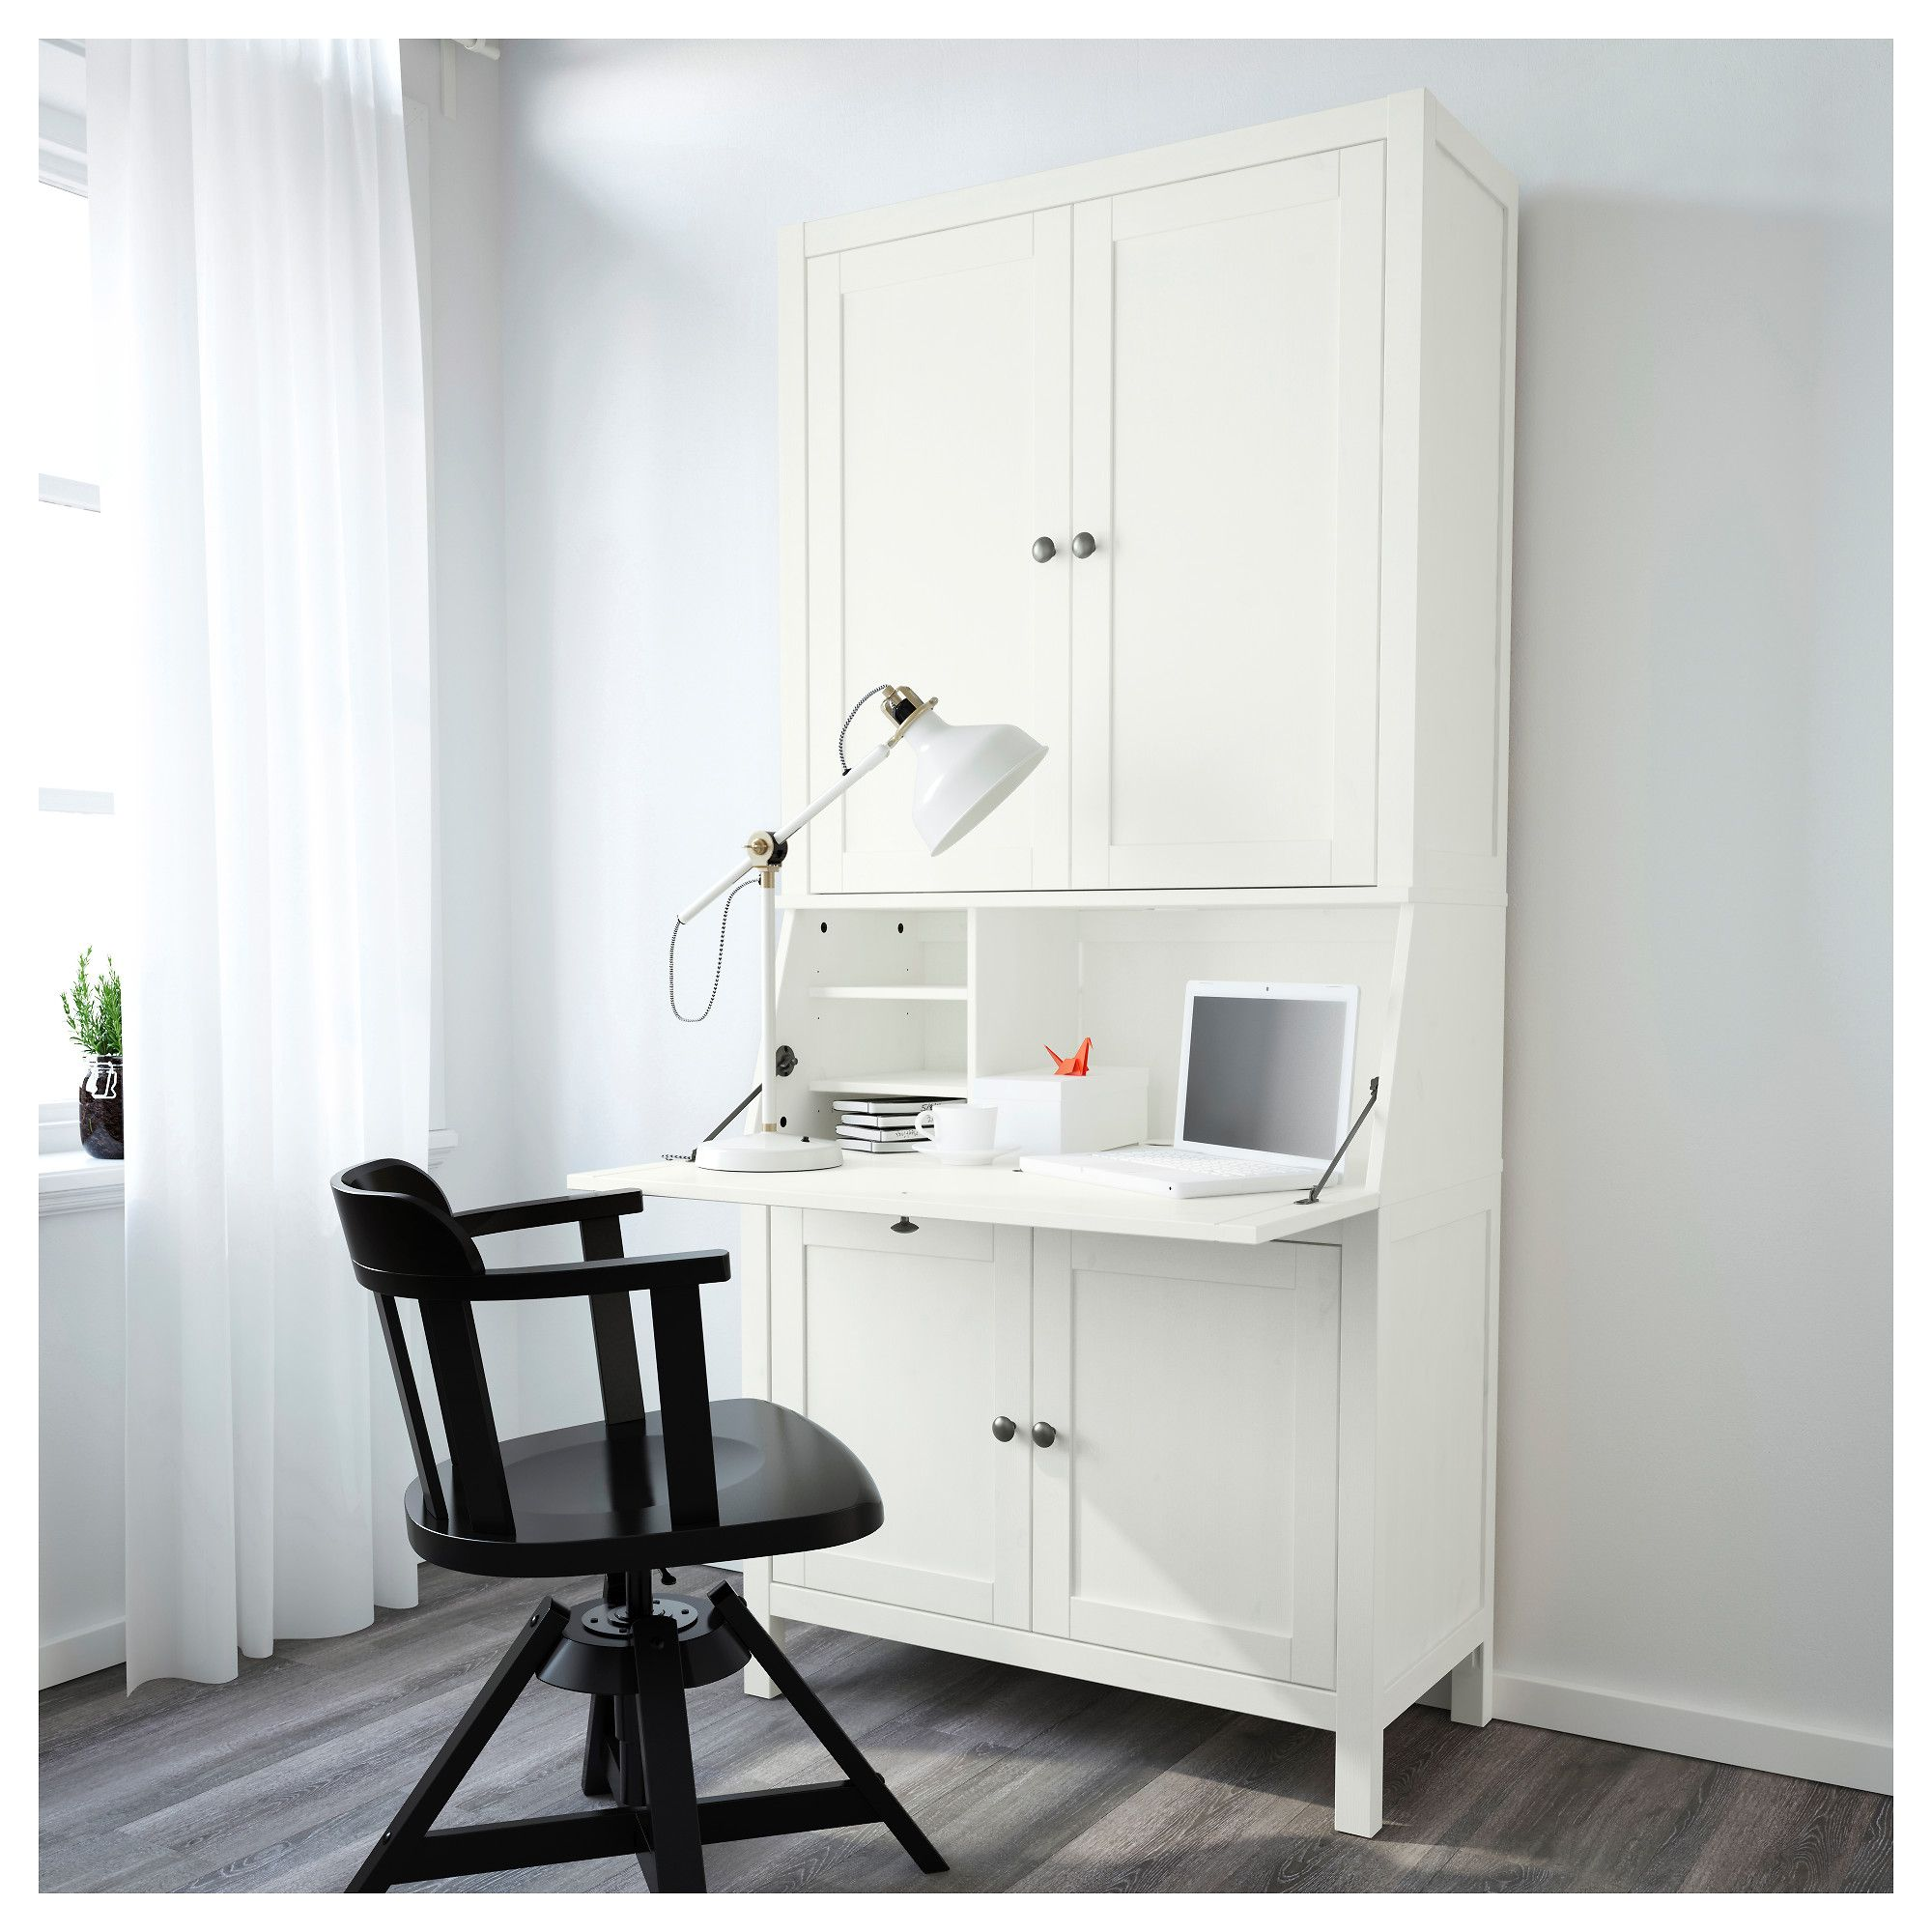 IKEA HEMNES Bureau With Add On Unit Light Brown 89x197 Cm Built In Cable Management For Collecting Cables And Cords Out Of Sight But Close At Hand